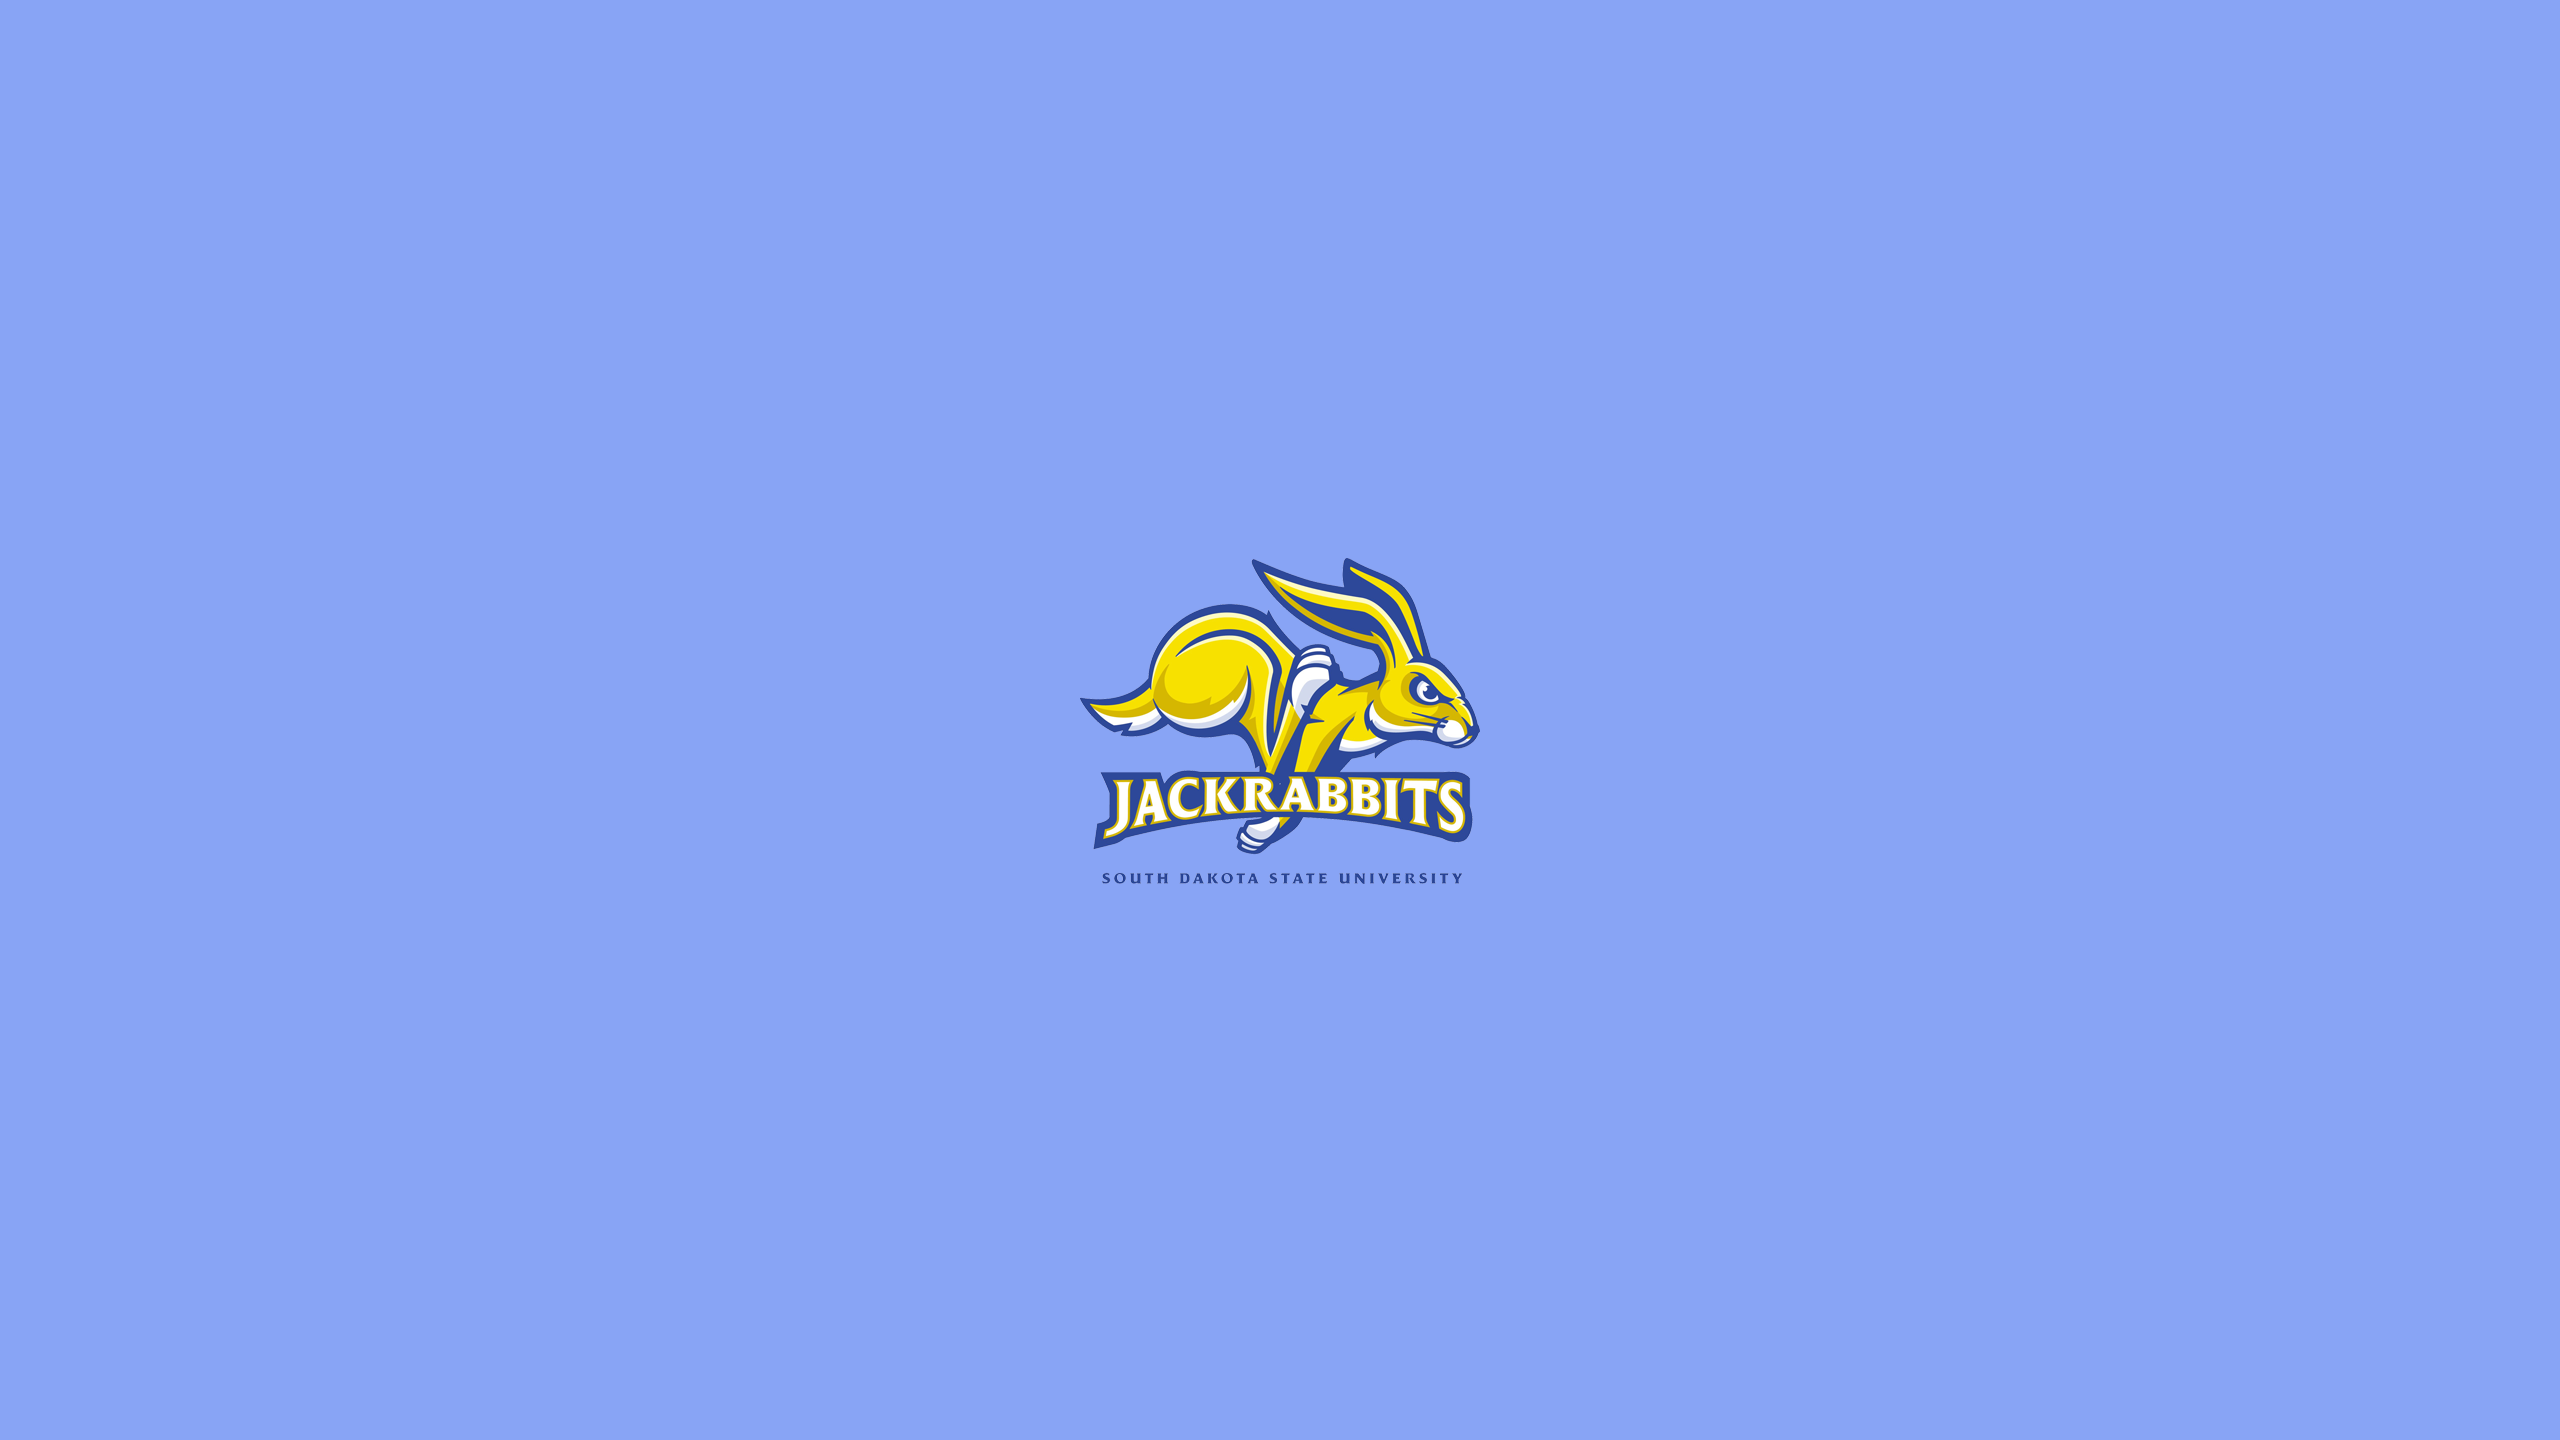 South Dakota St. University Jackrabbits